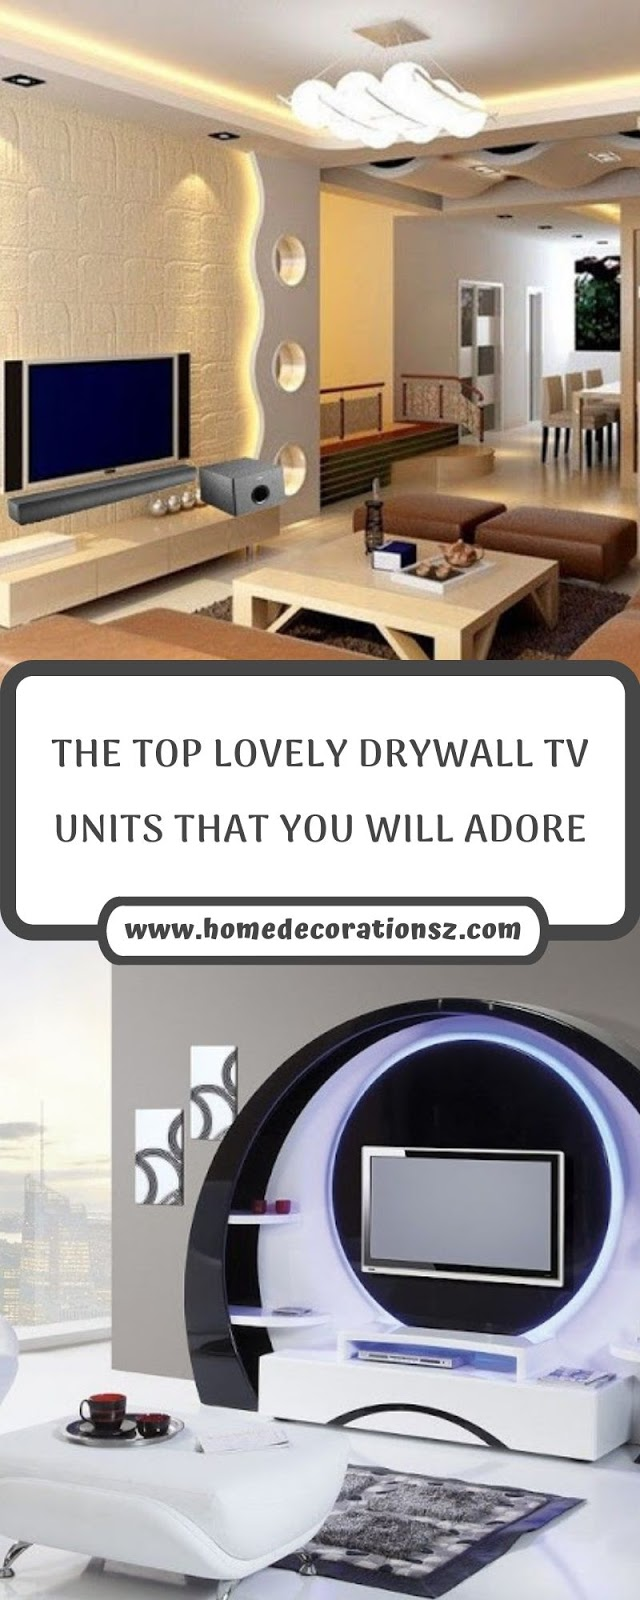 THE TOP LOVELY DRYWALL TV UNITS THAT YOU WILL ADORE